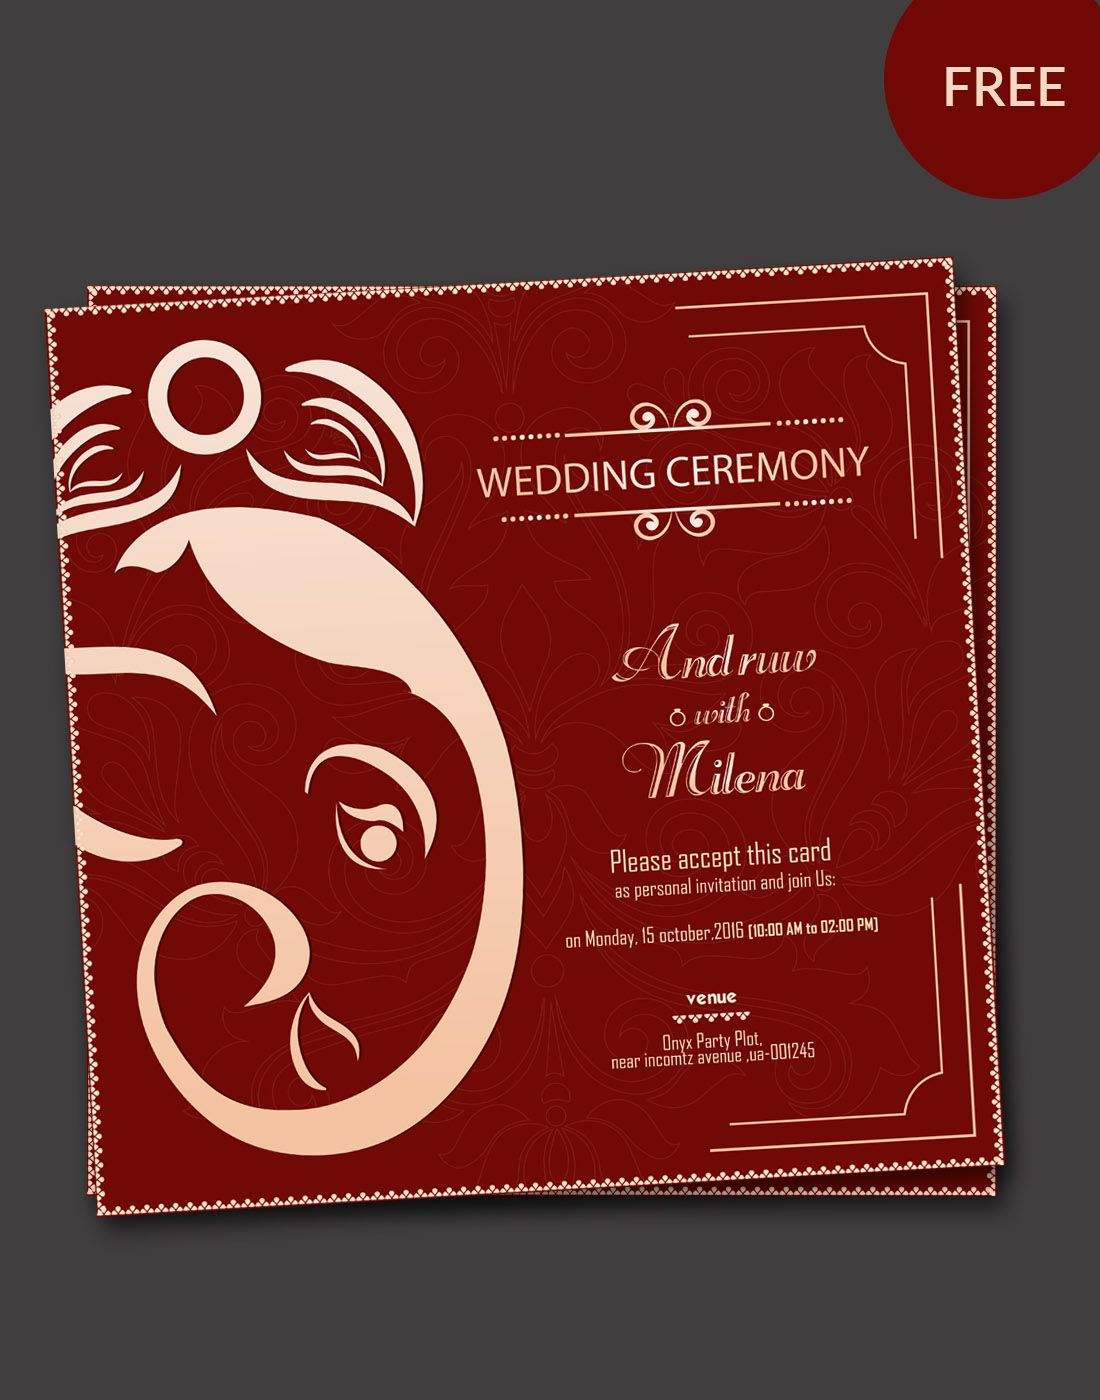 wedding kankotri templates | Indian wedding invitation cards, Hindu wedding  invitations, Christmas card template